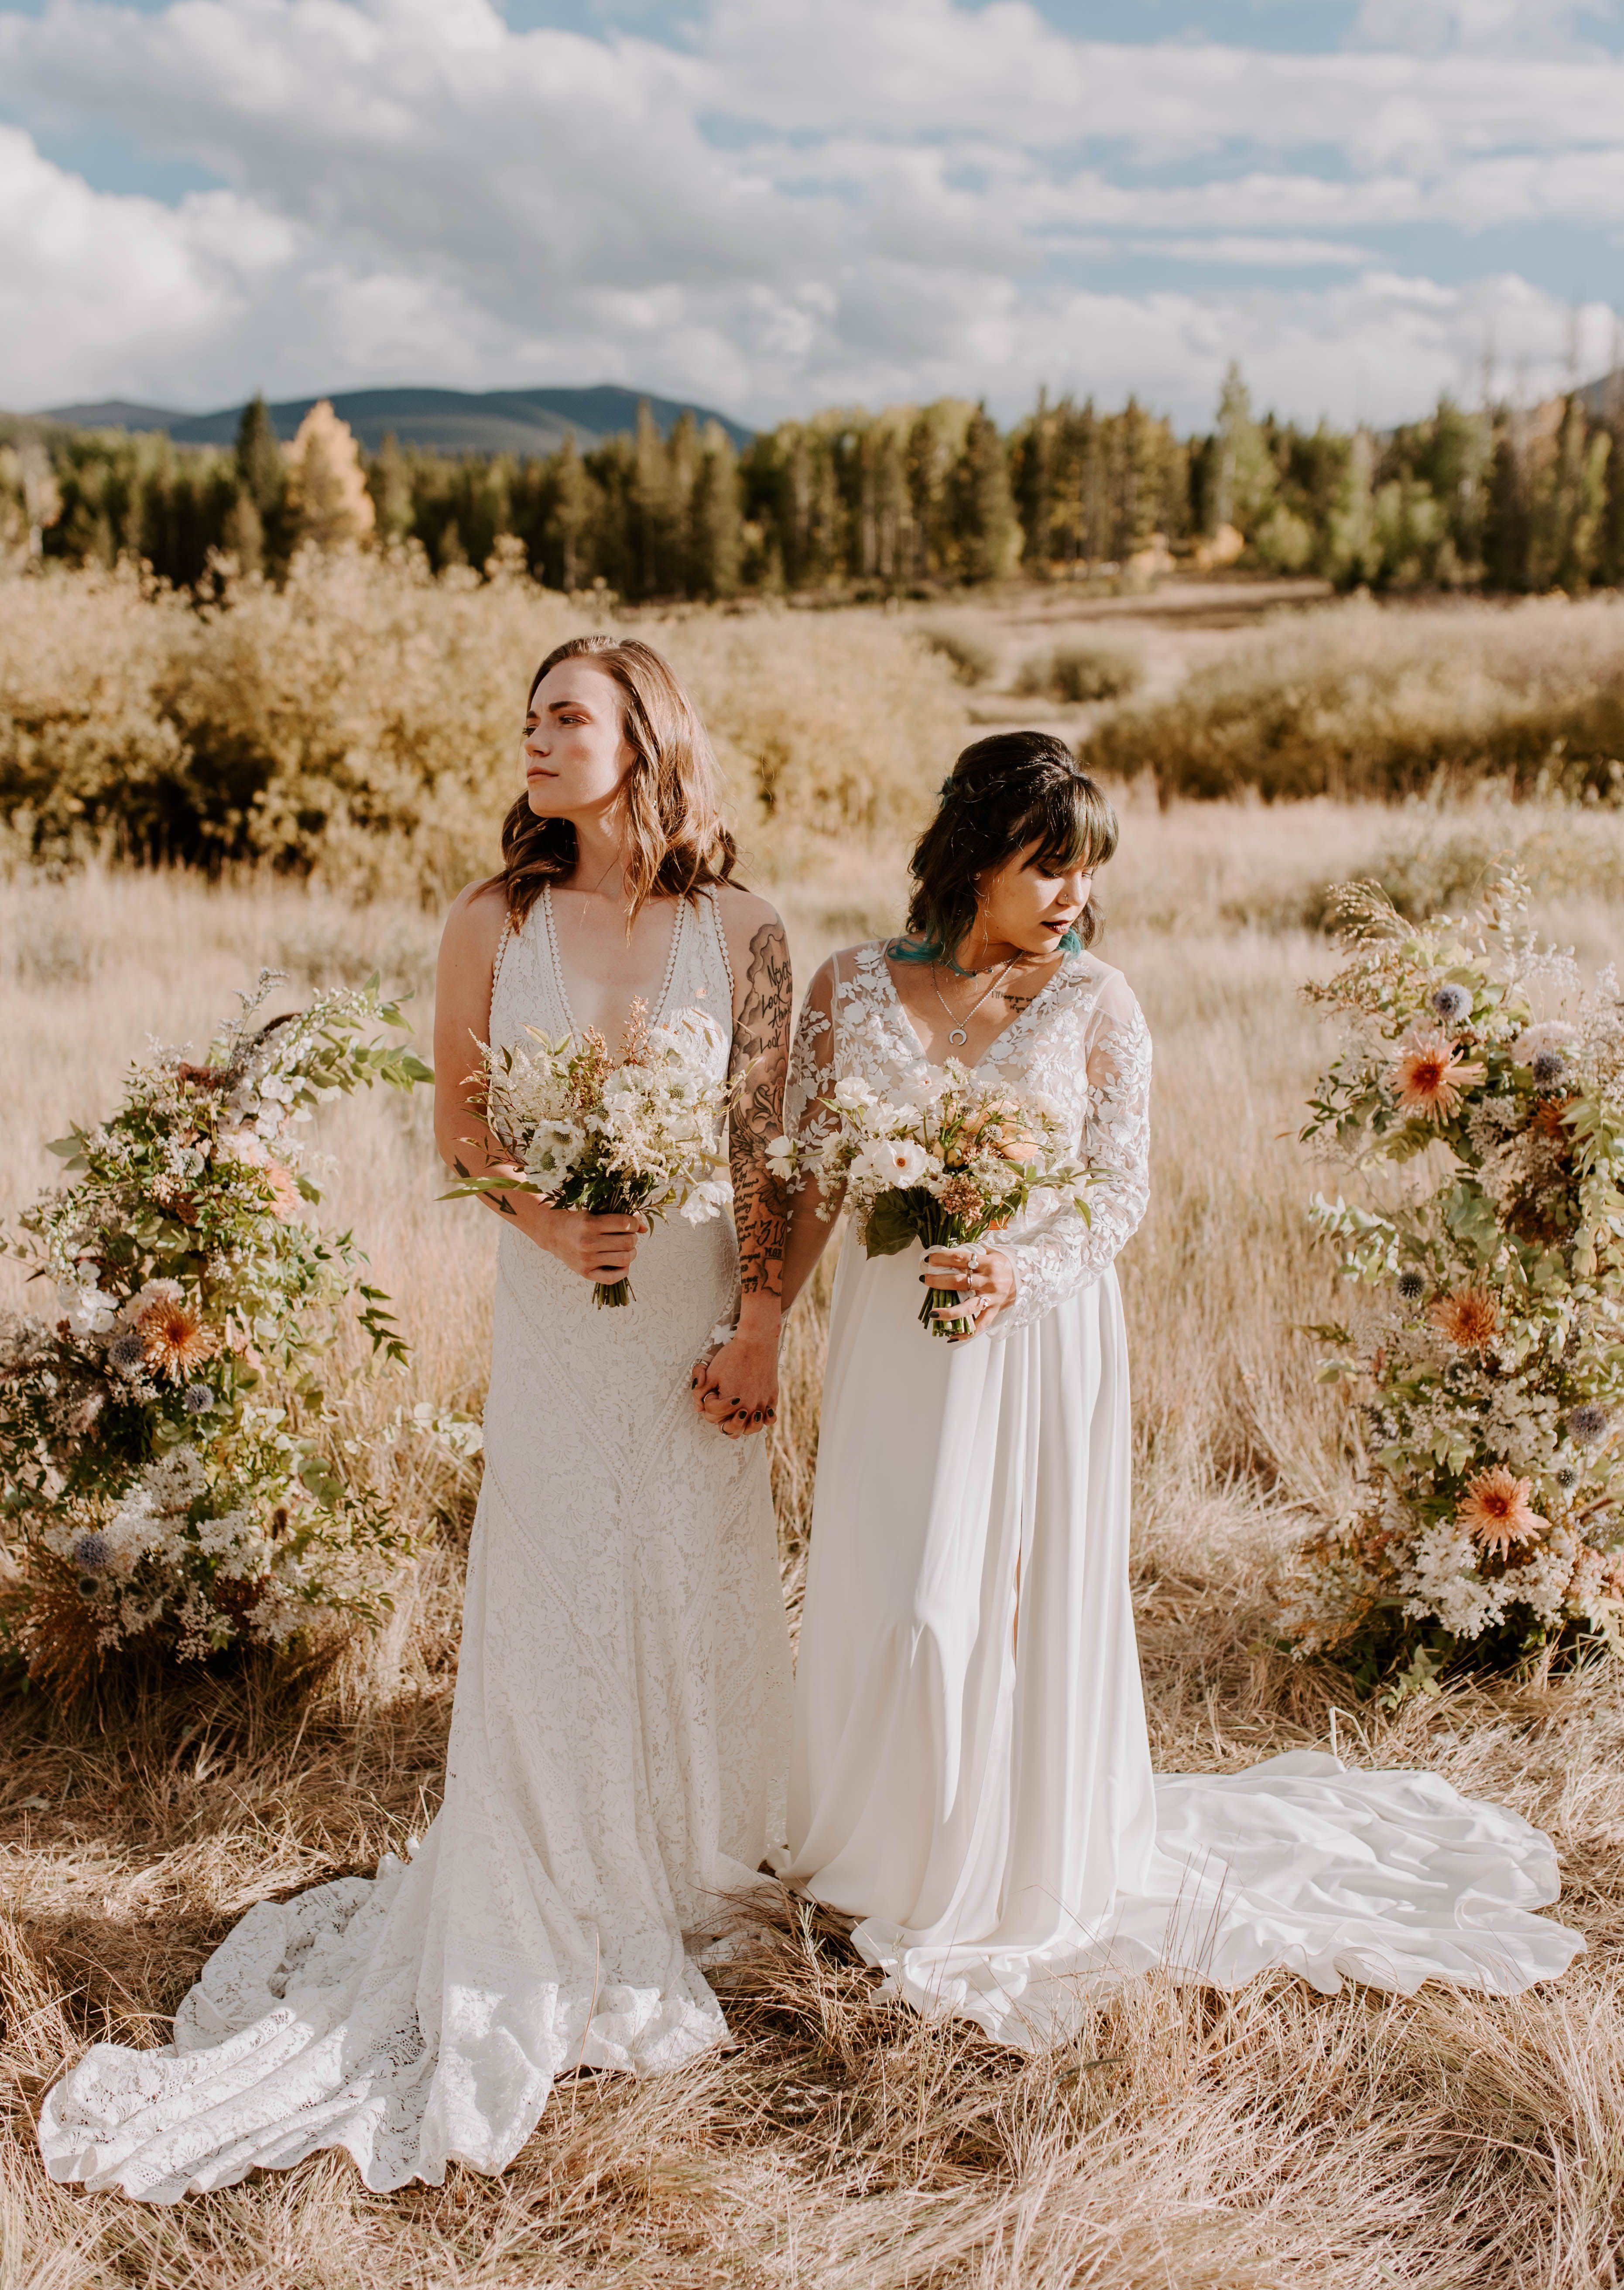 Home Lexi Hope Photography in 2020 Wedding dresses